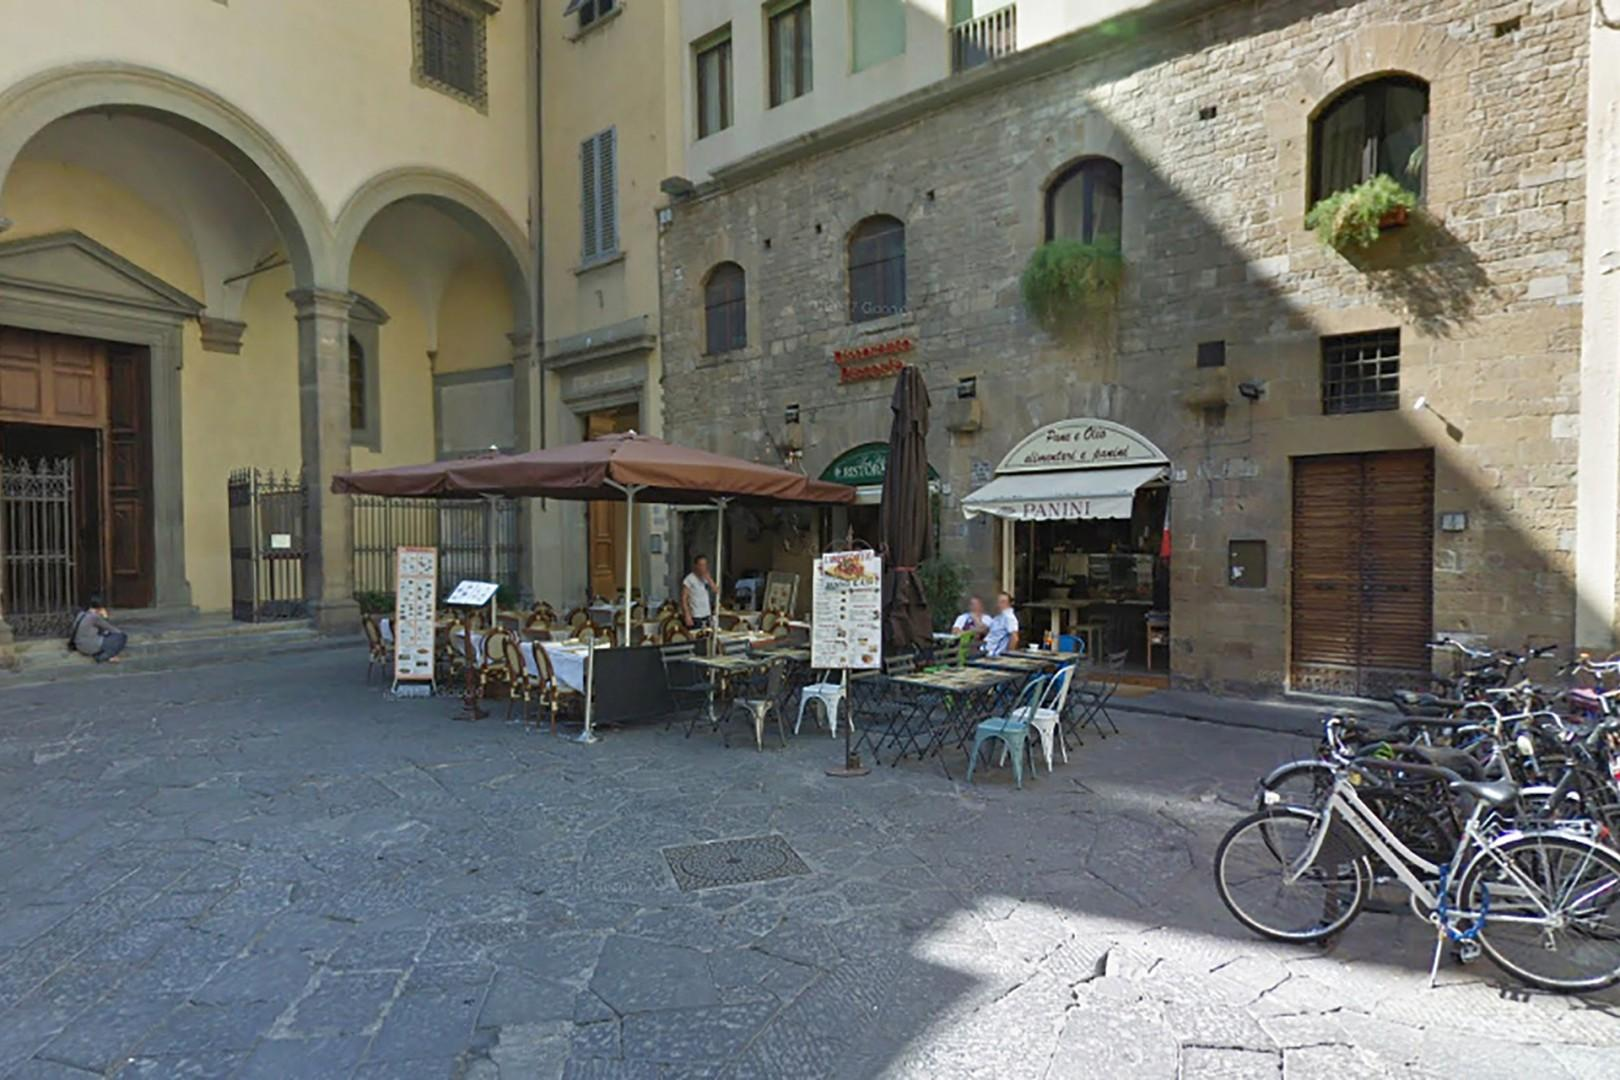 The charming little Piazza Santa Felicita where the apartment is located.